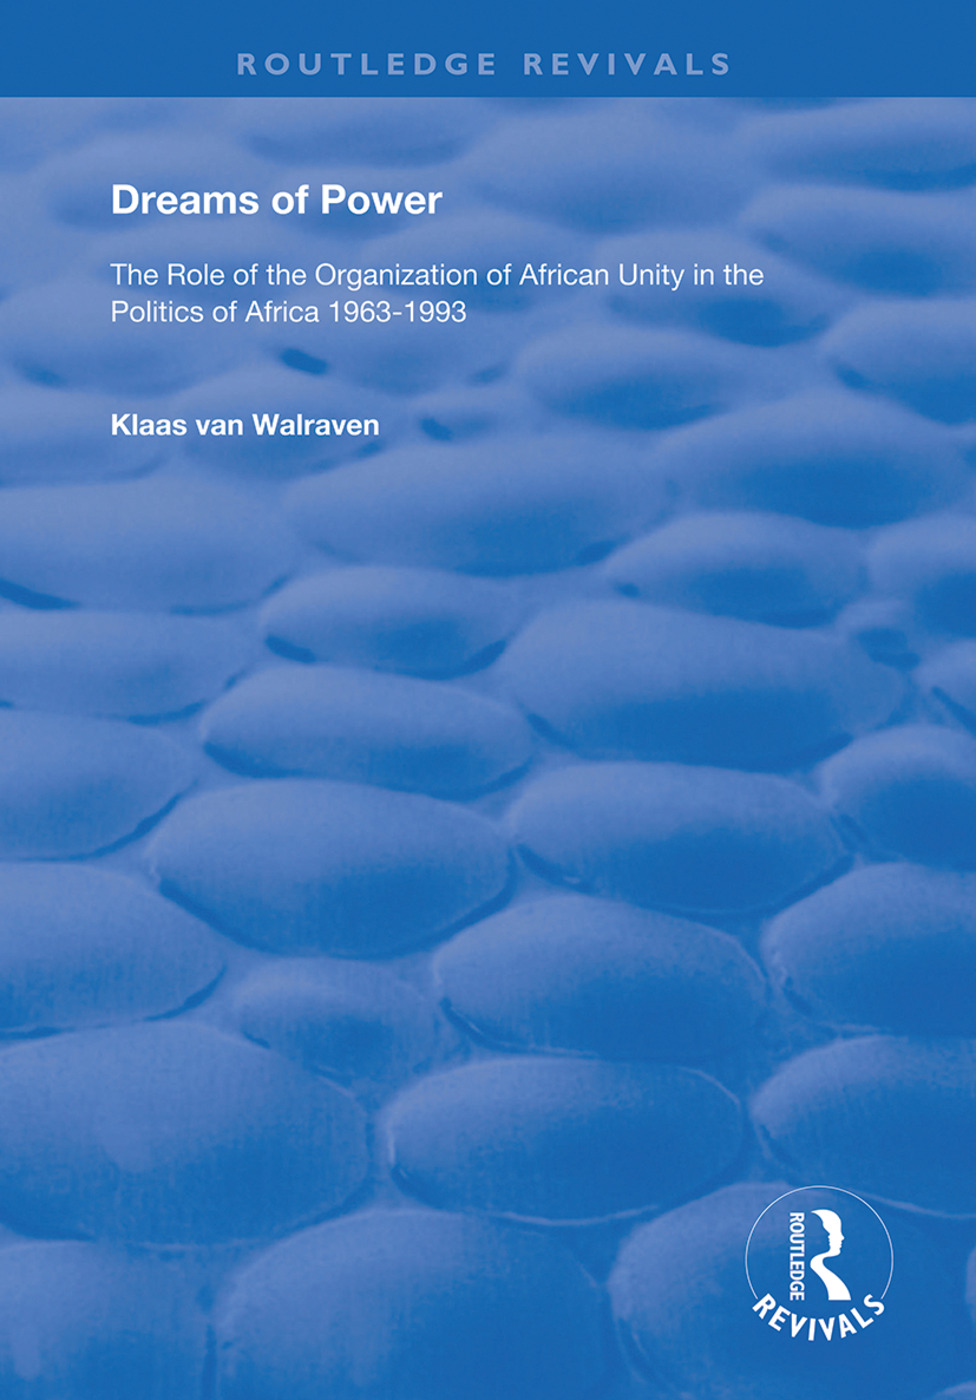 Dreams of Power: The Role of the Organization of African Unity in the Politics of Africa 1963-1993 book cover